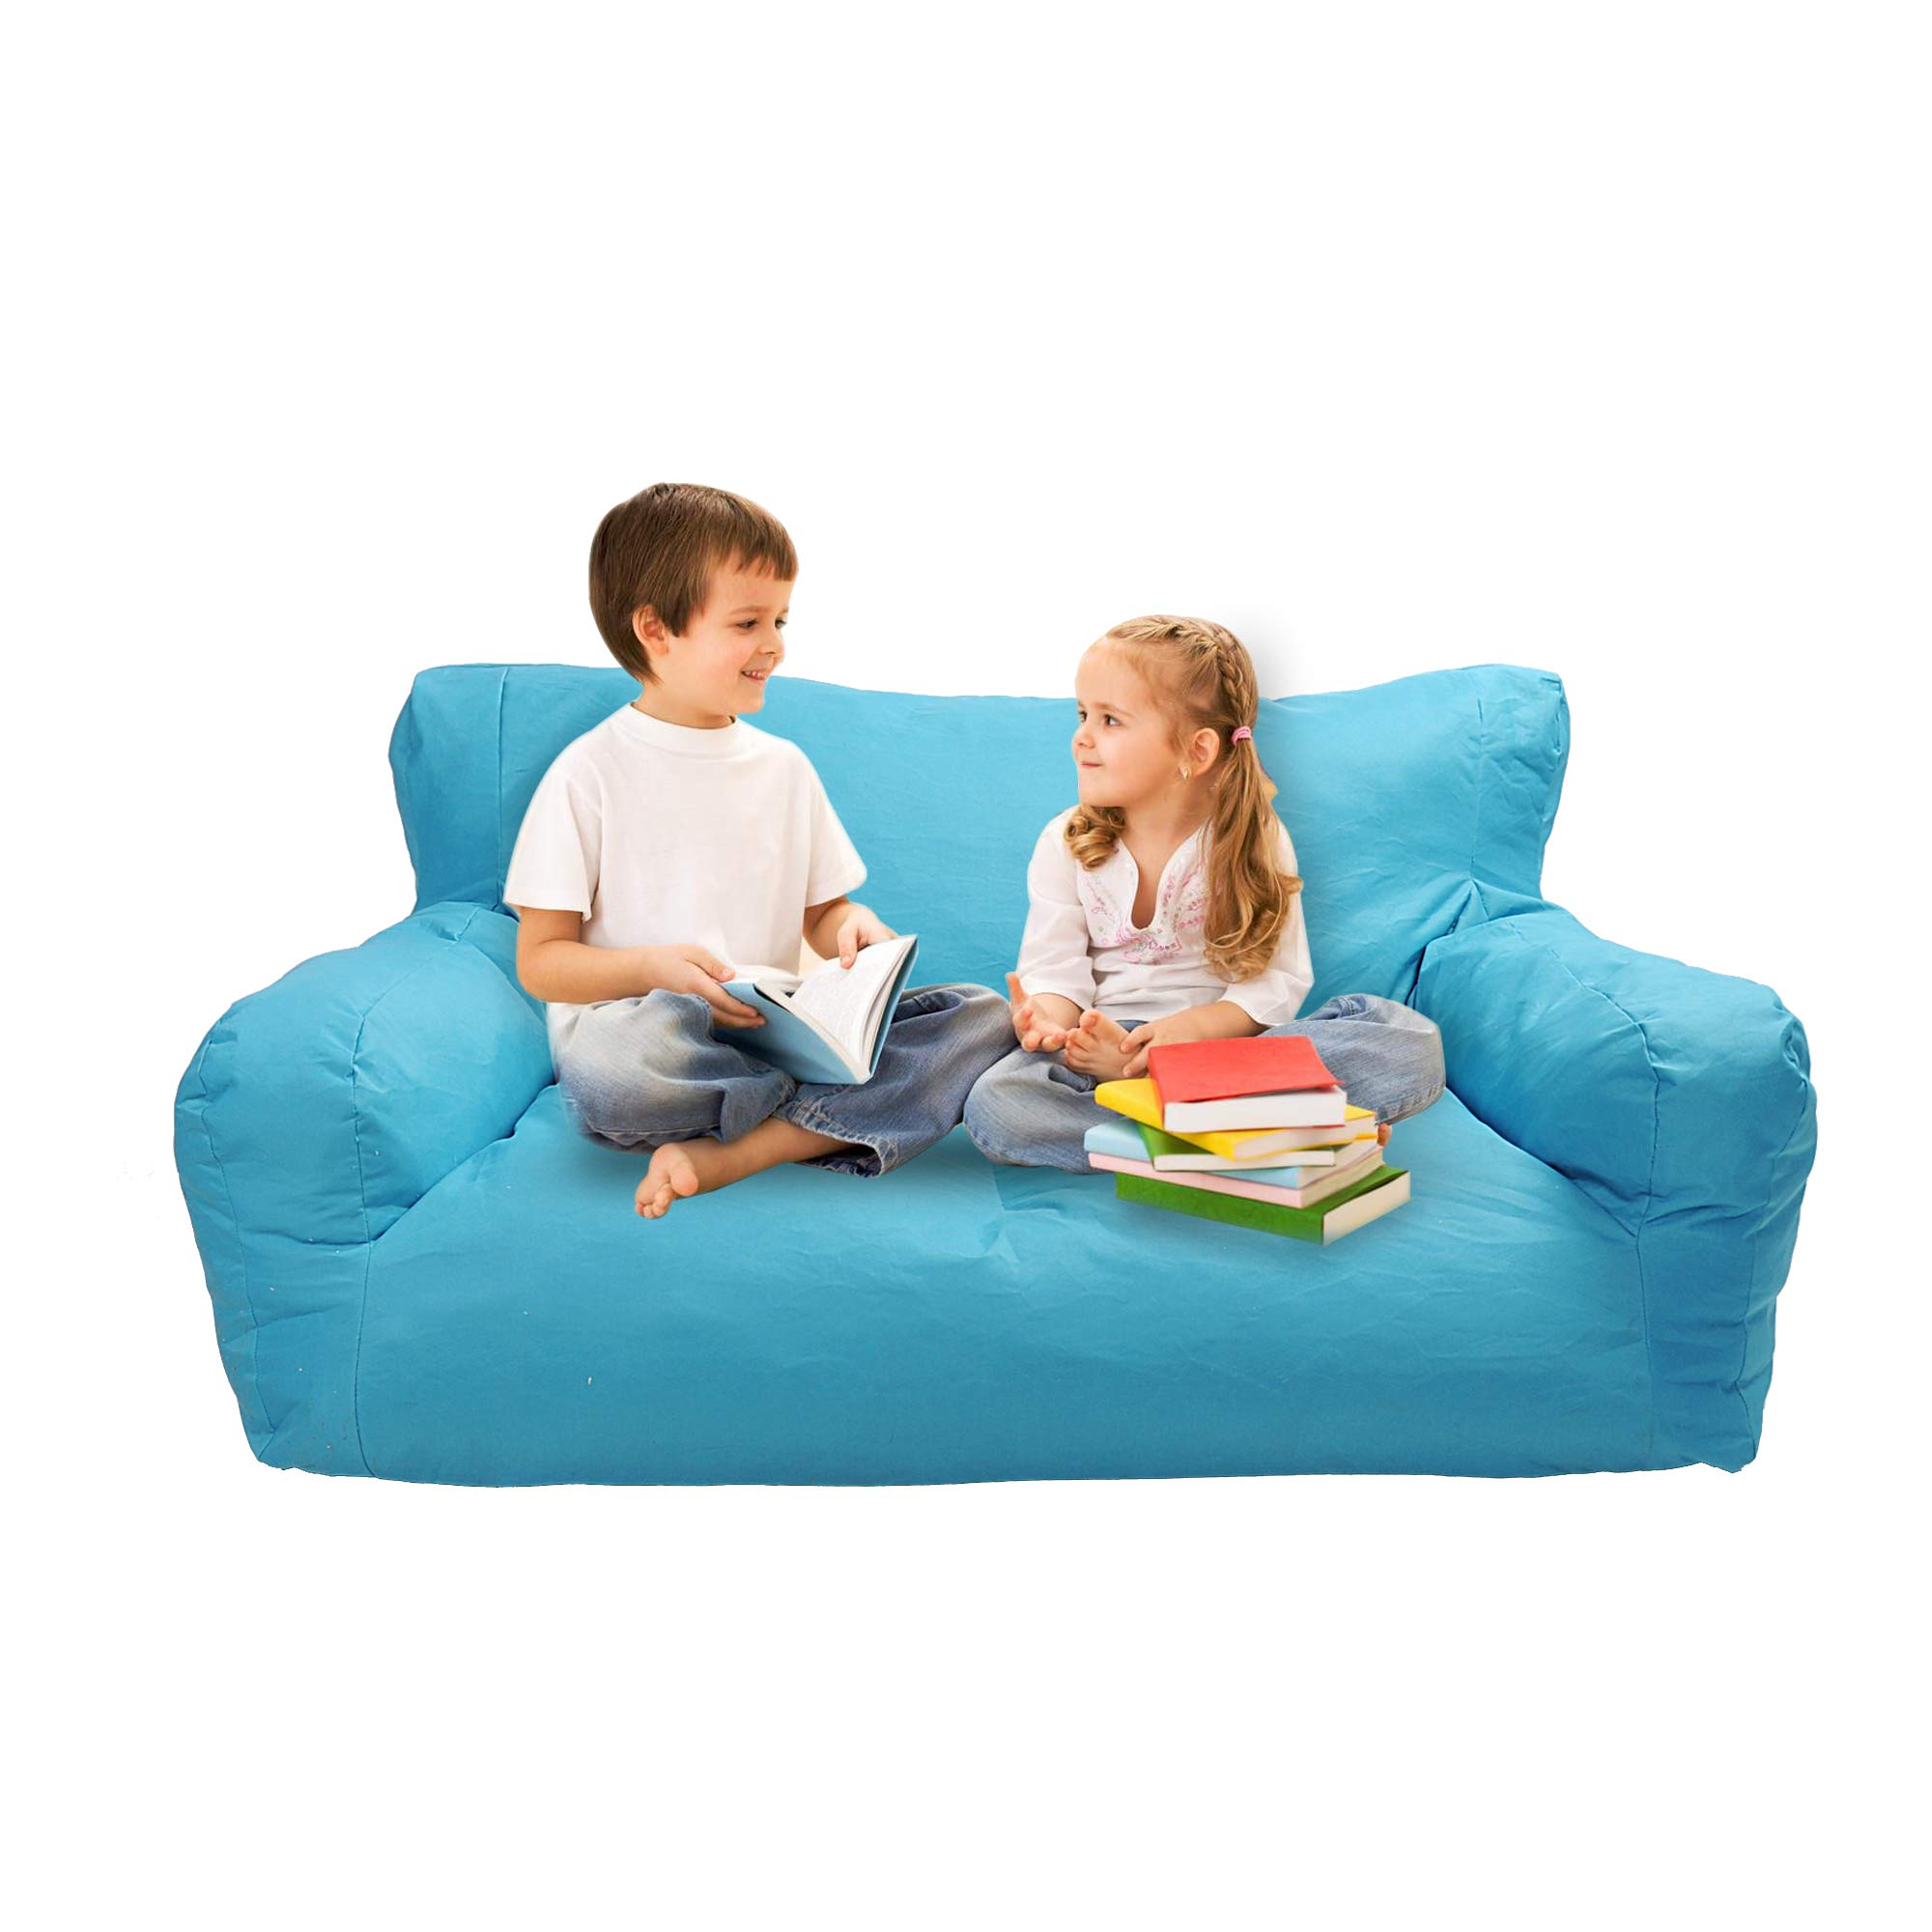 Livebest Kids Bean Bag Chair Children Memory Sponge Lounger Sofa Furniture with Two Seats,51.2 x 31.5 x 18.5 in